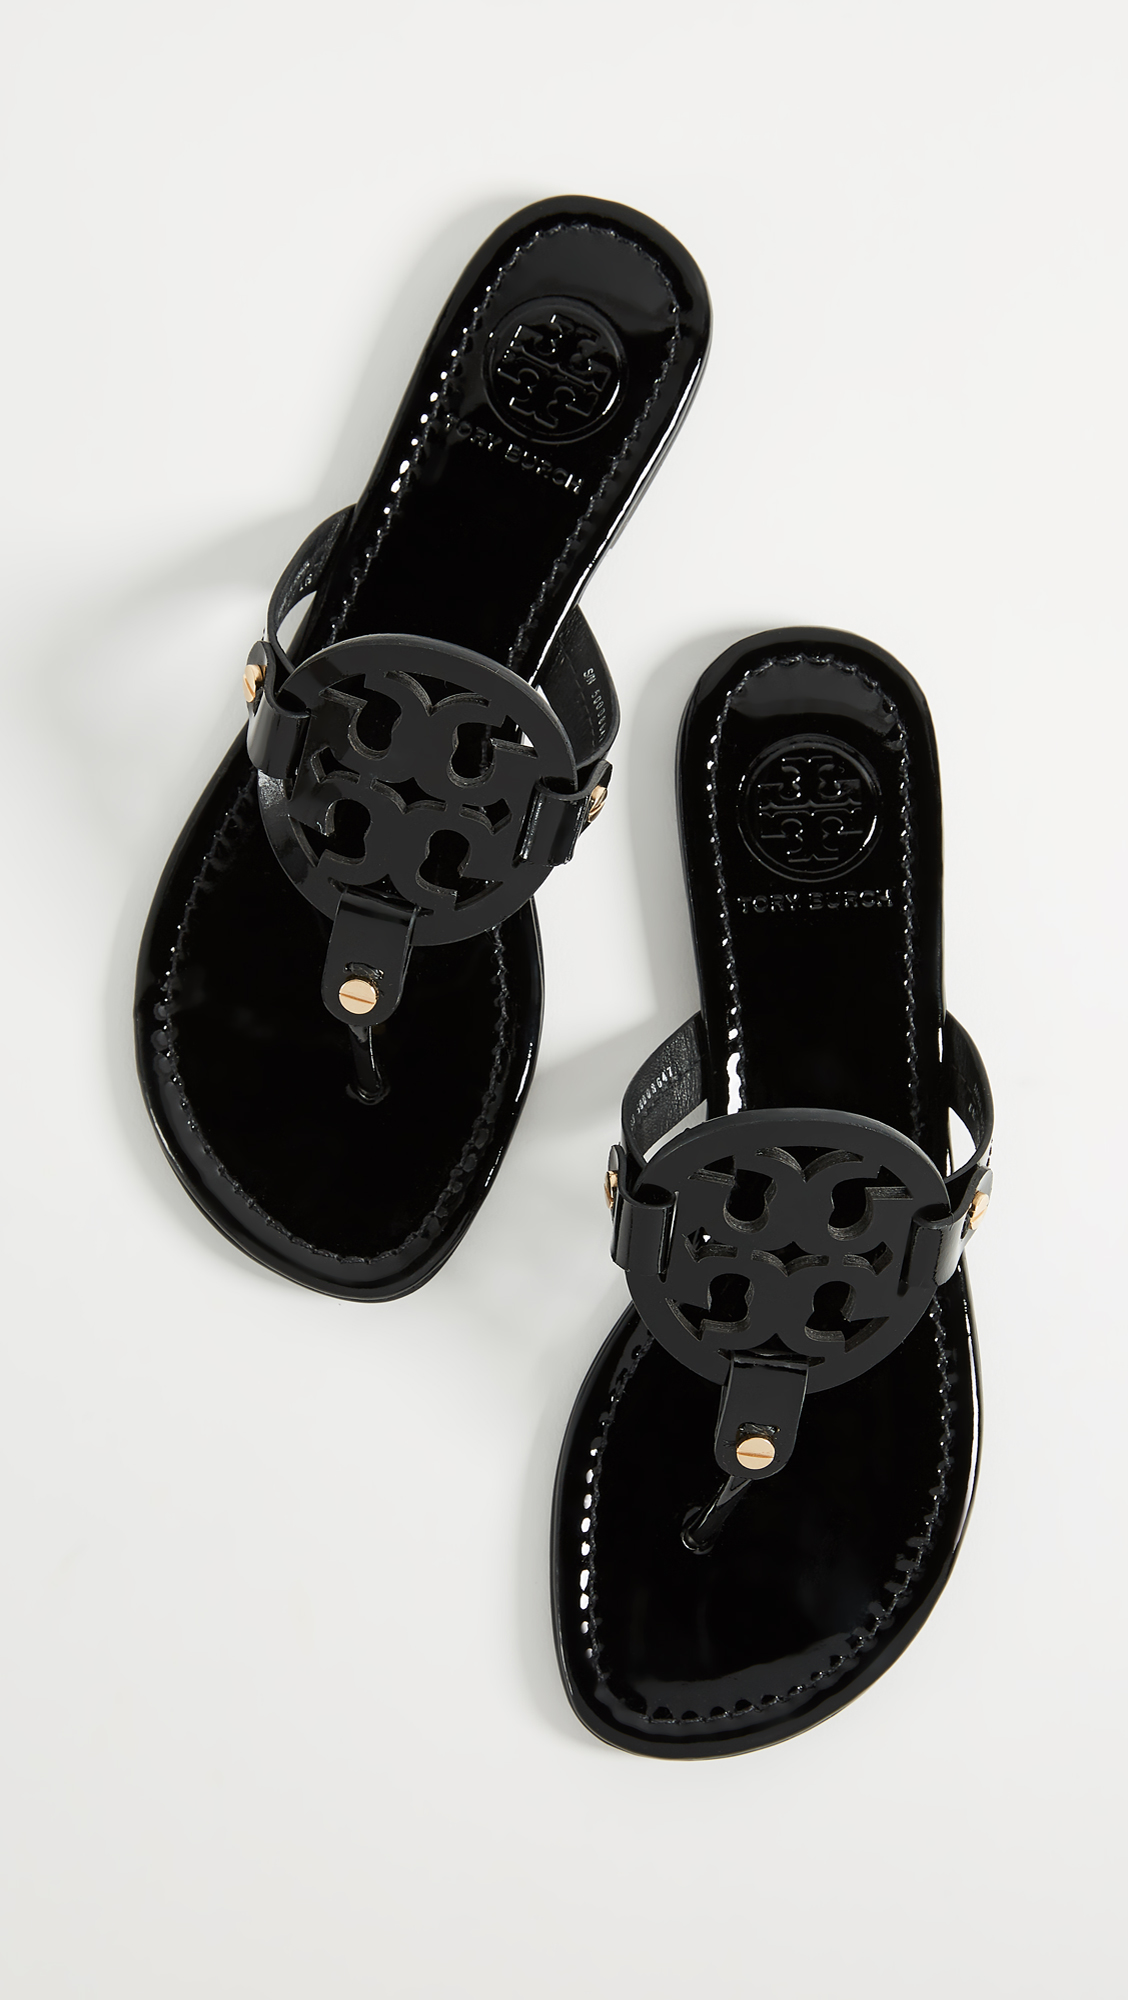 6ccdd78fba8 Tory Burch Miller Thong Sandals